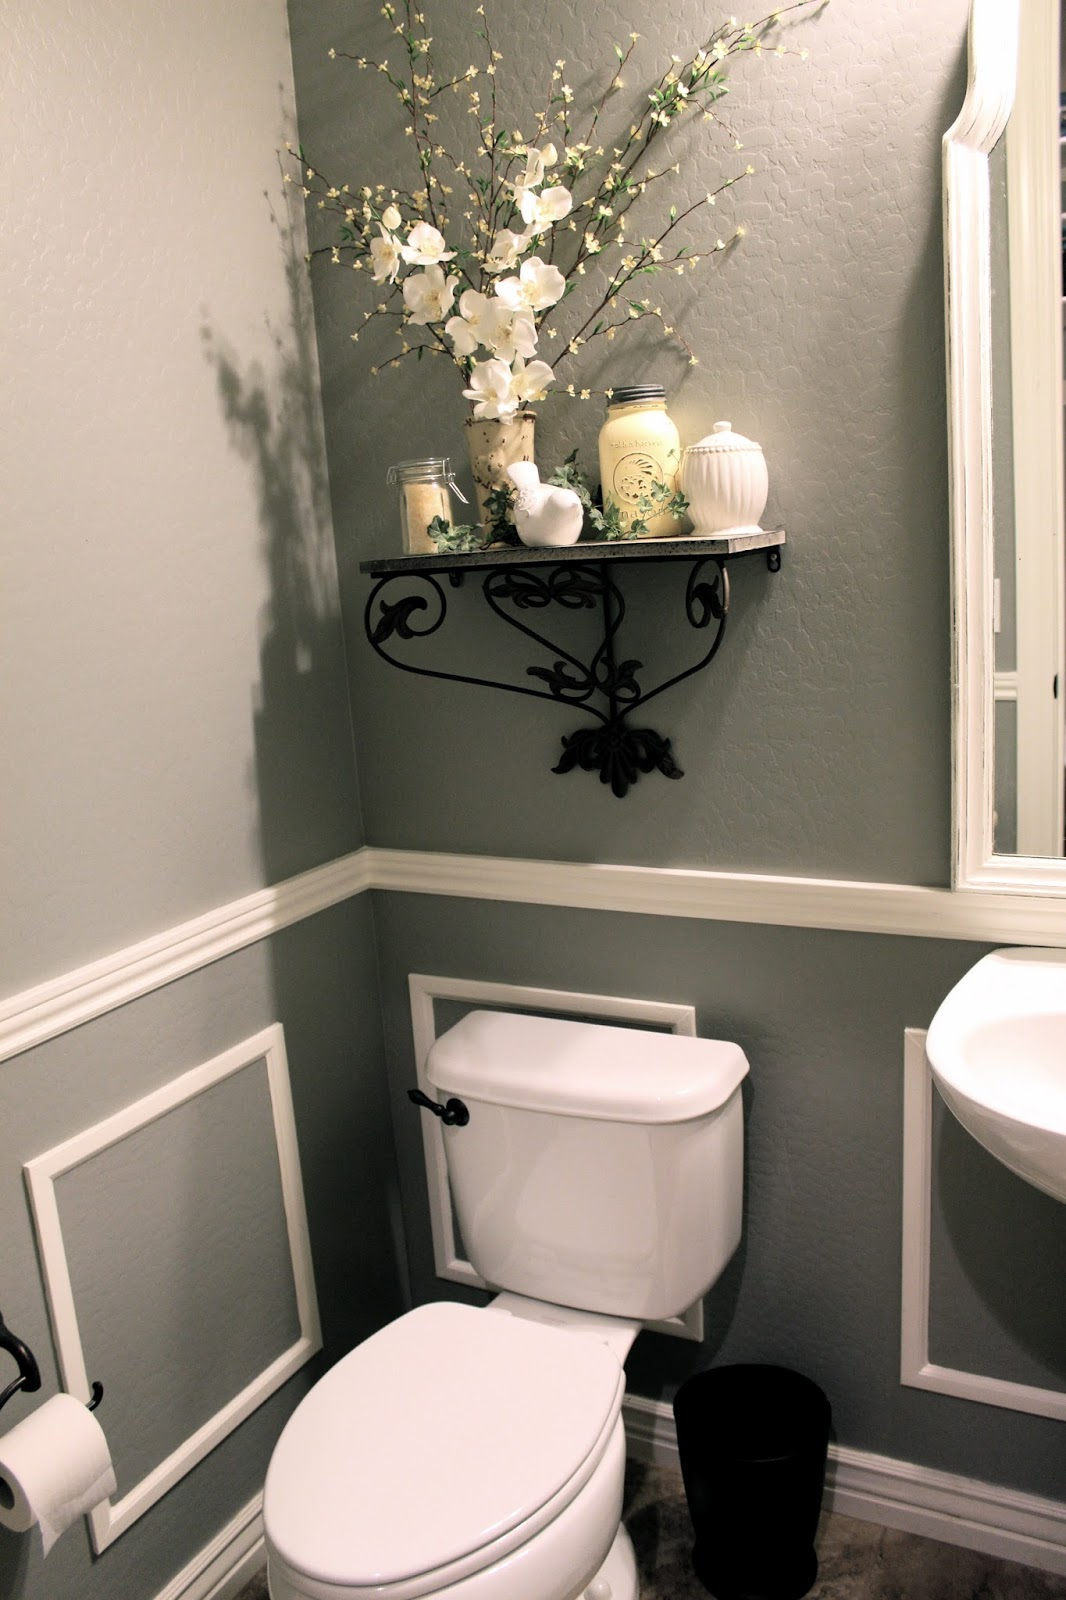 Best Little Bit Of Paint Thrifty Thursday Bathroom Reveal This Month